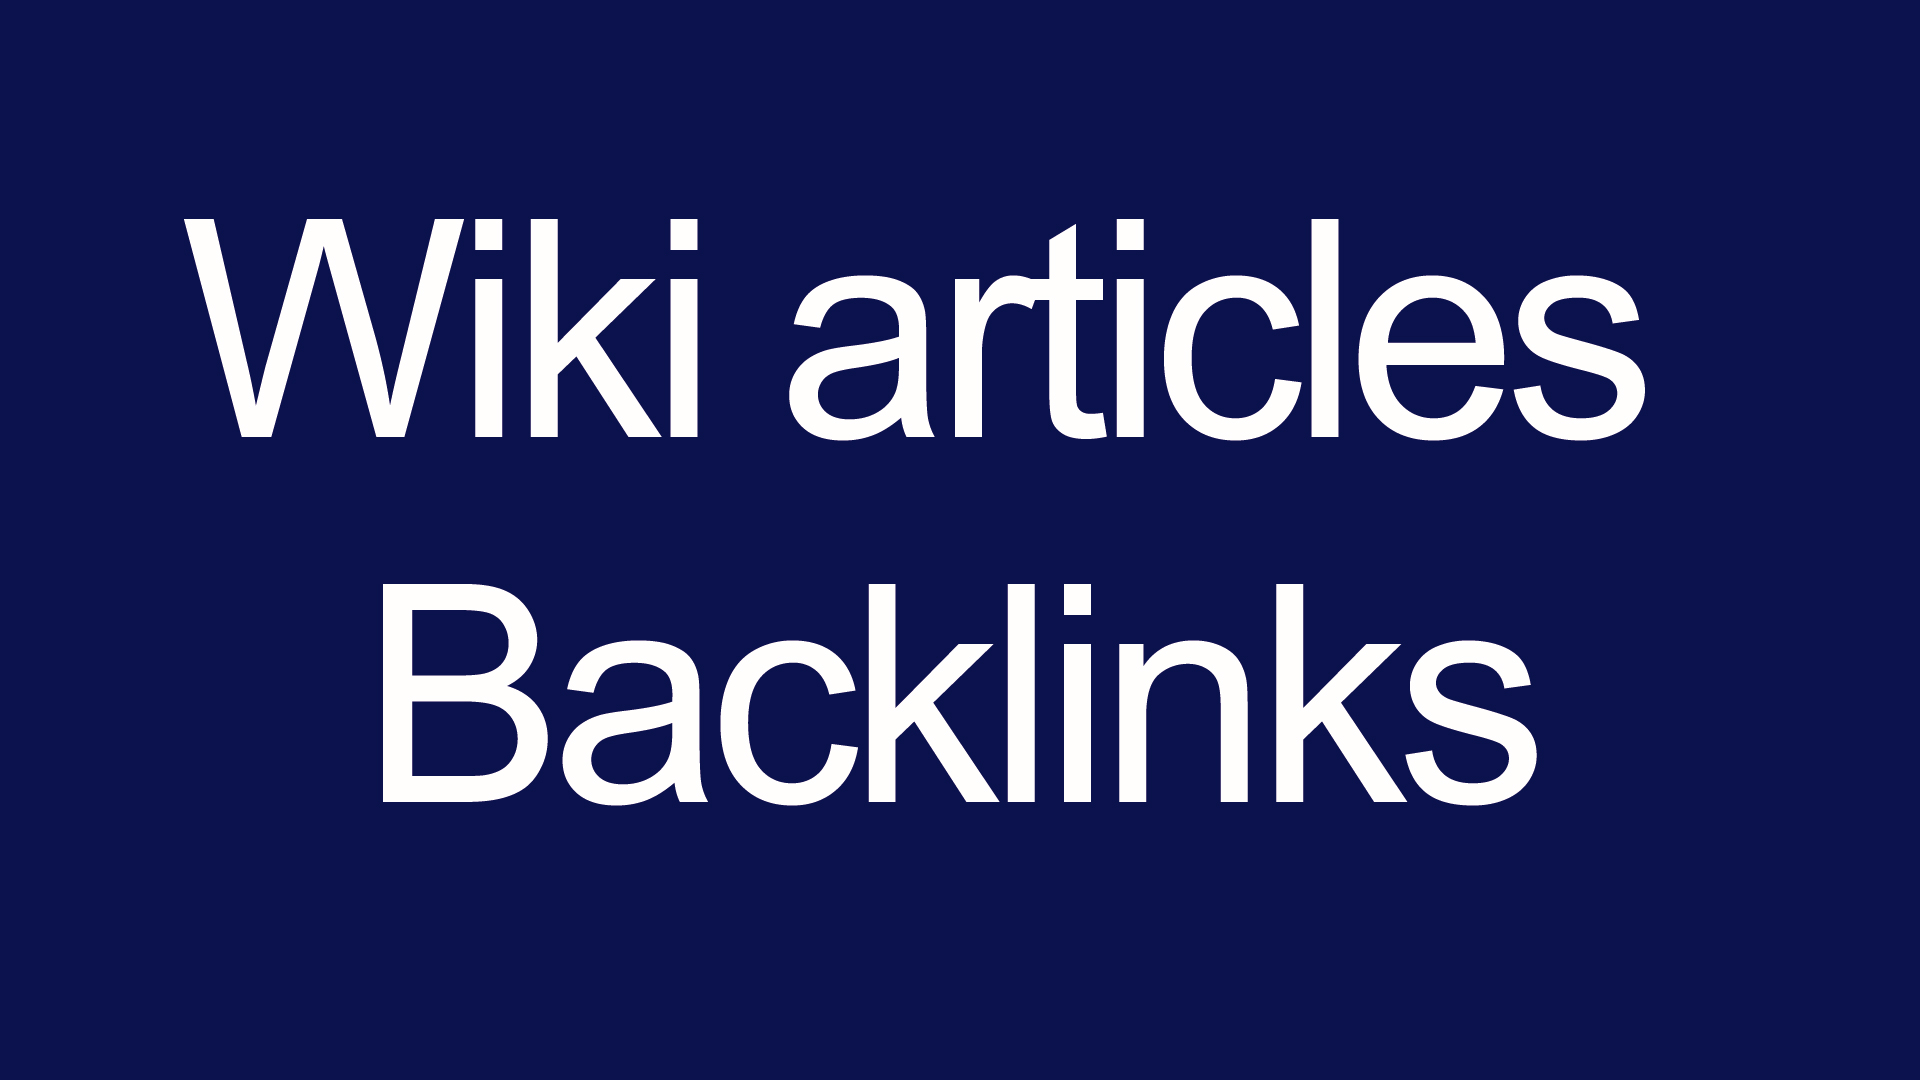 Wiki articles Backlinks contextual backlinks 3000 backlinks for your site